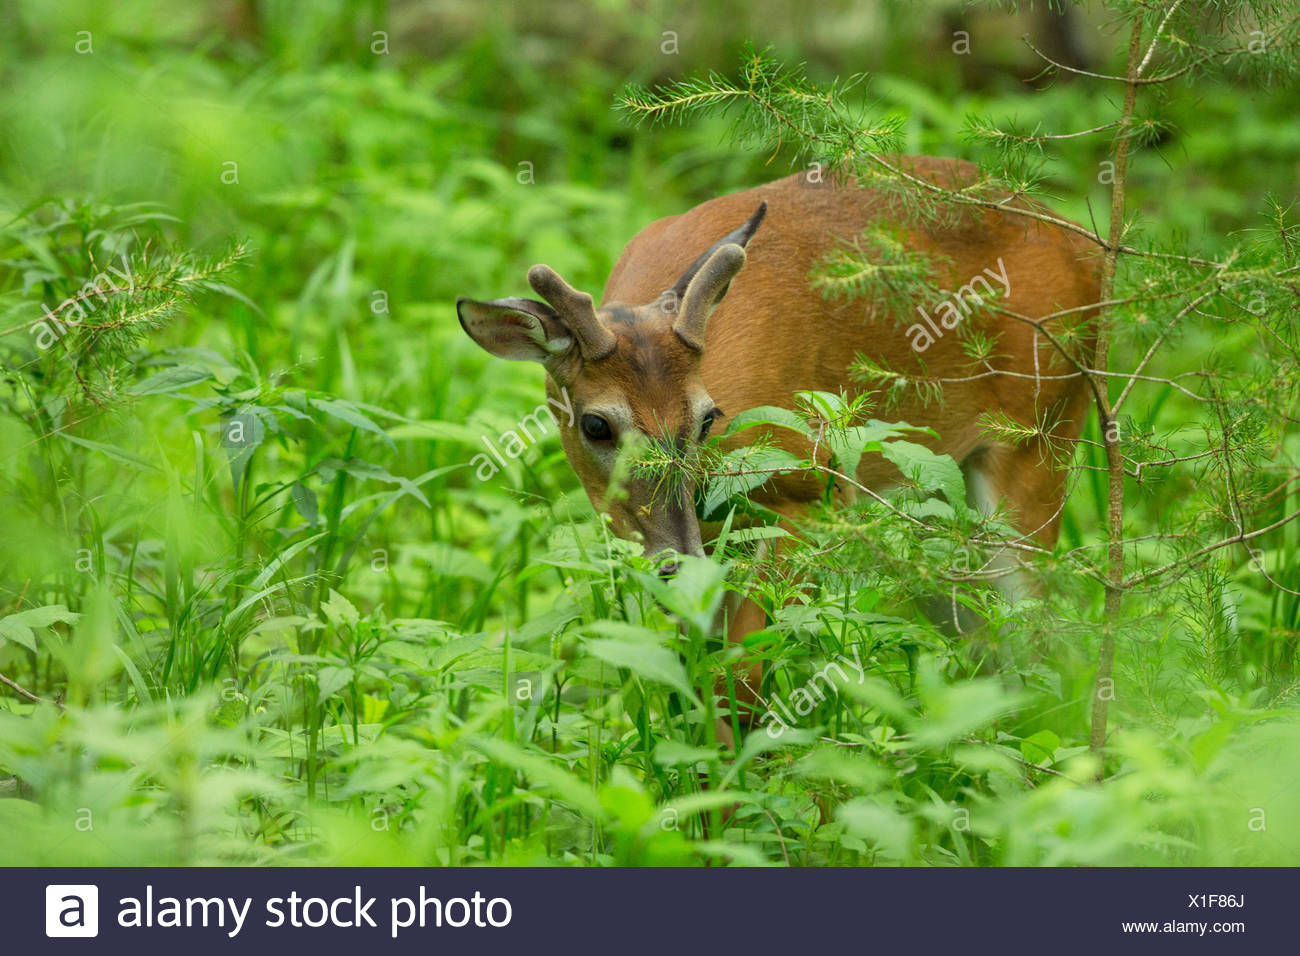 White-tailed deer (Odocoileus virginianus), browsing between herbaceous perennials, USA, Tennessee, Great Smoky Mountains National Park - Stock Image